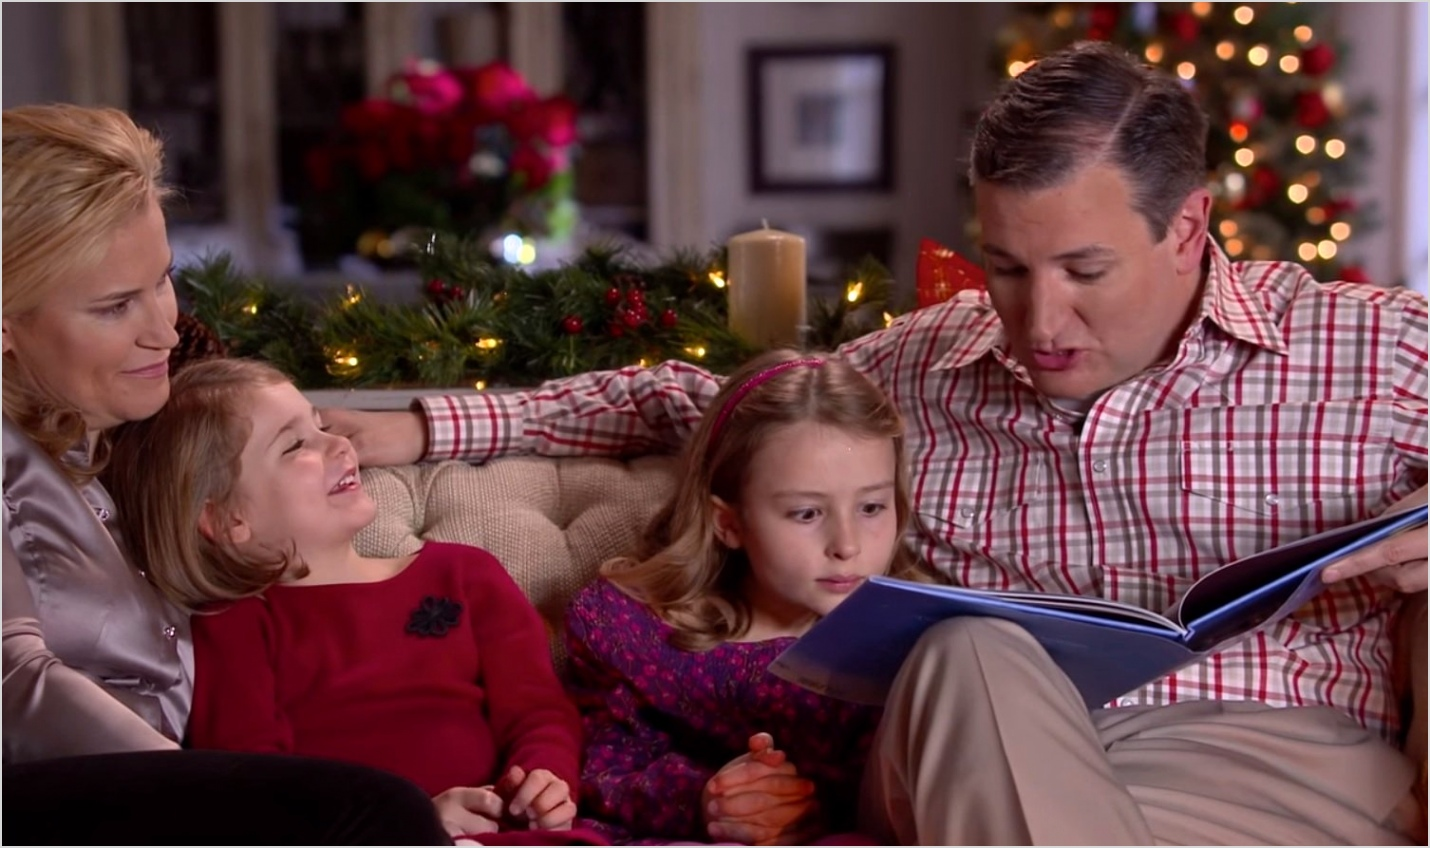 10 stupidest things about the posts cartoon portraying cruzs children as monkeys